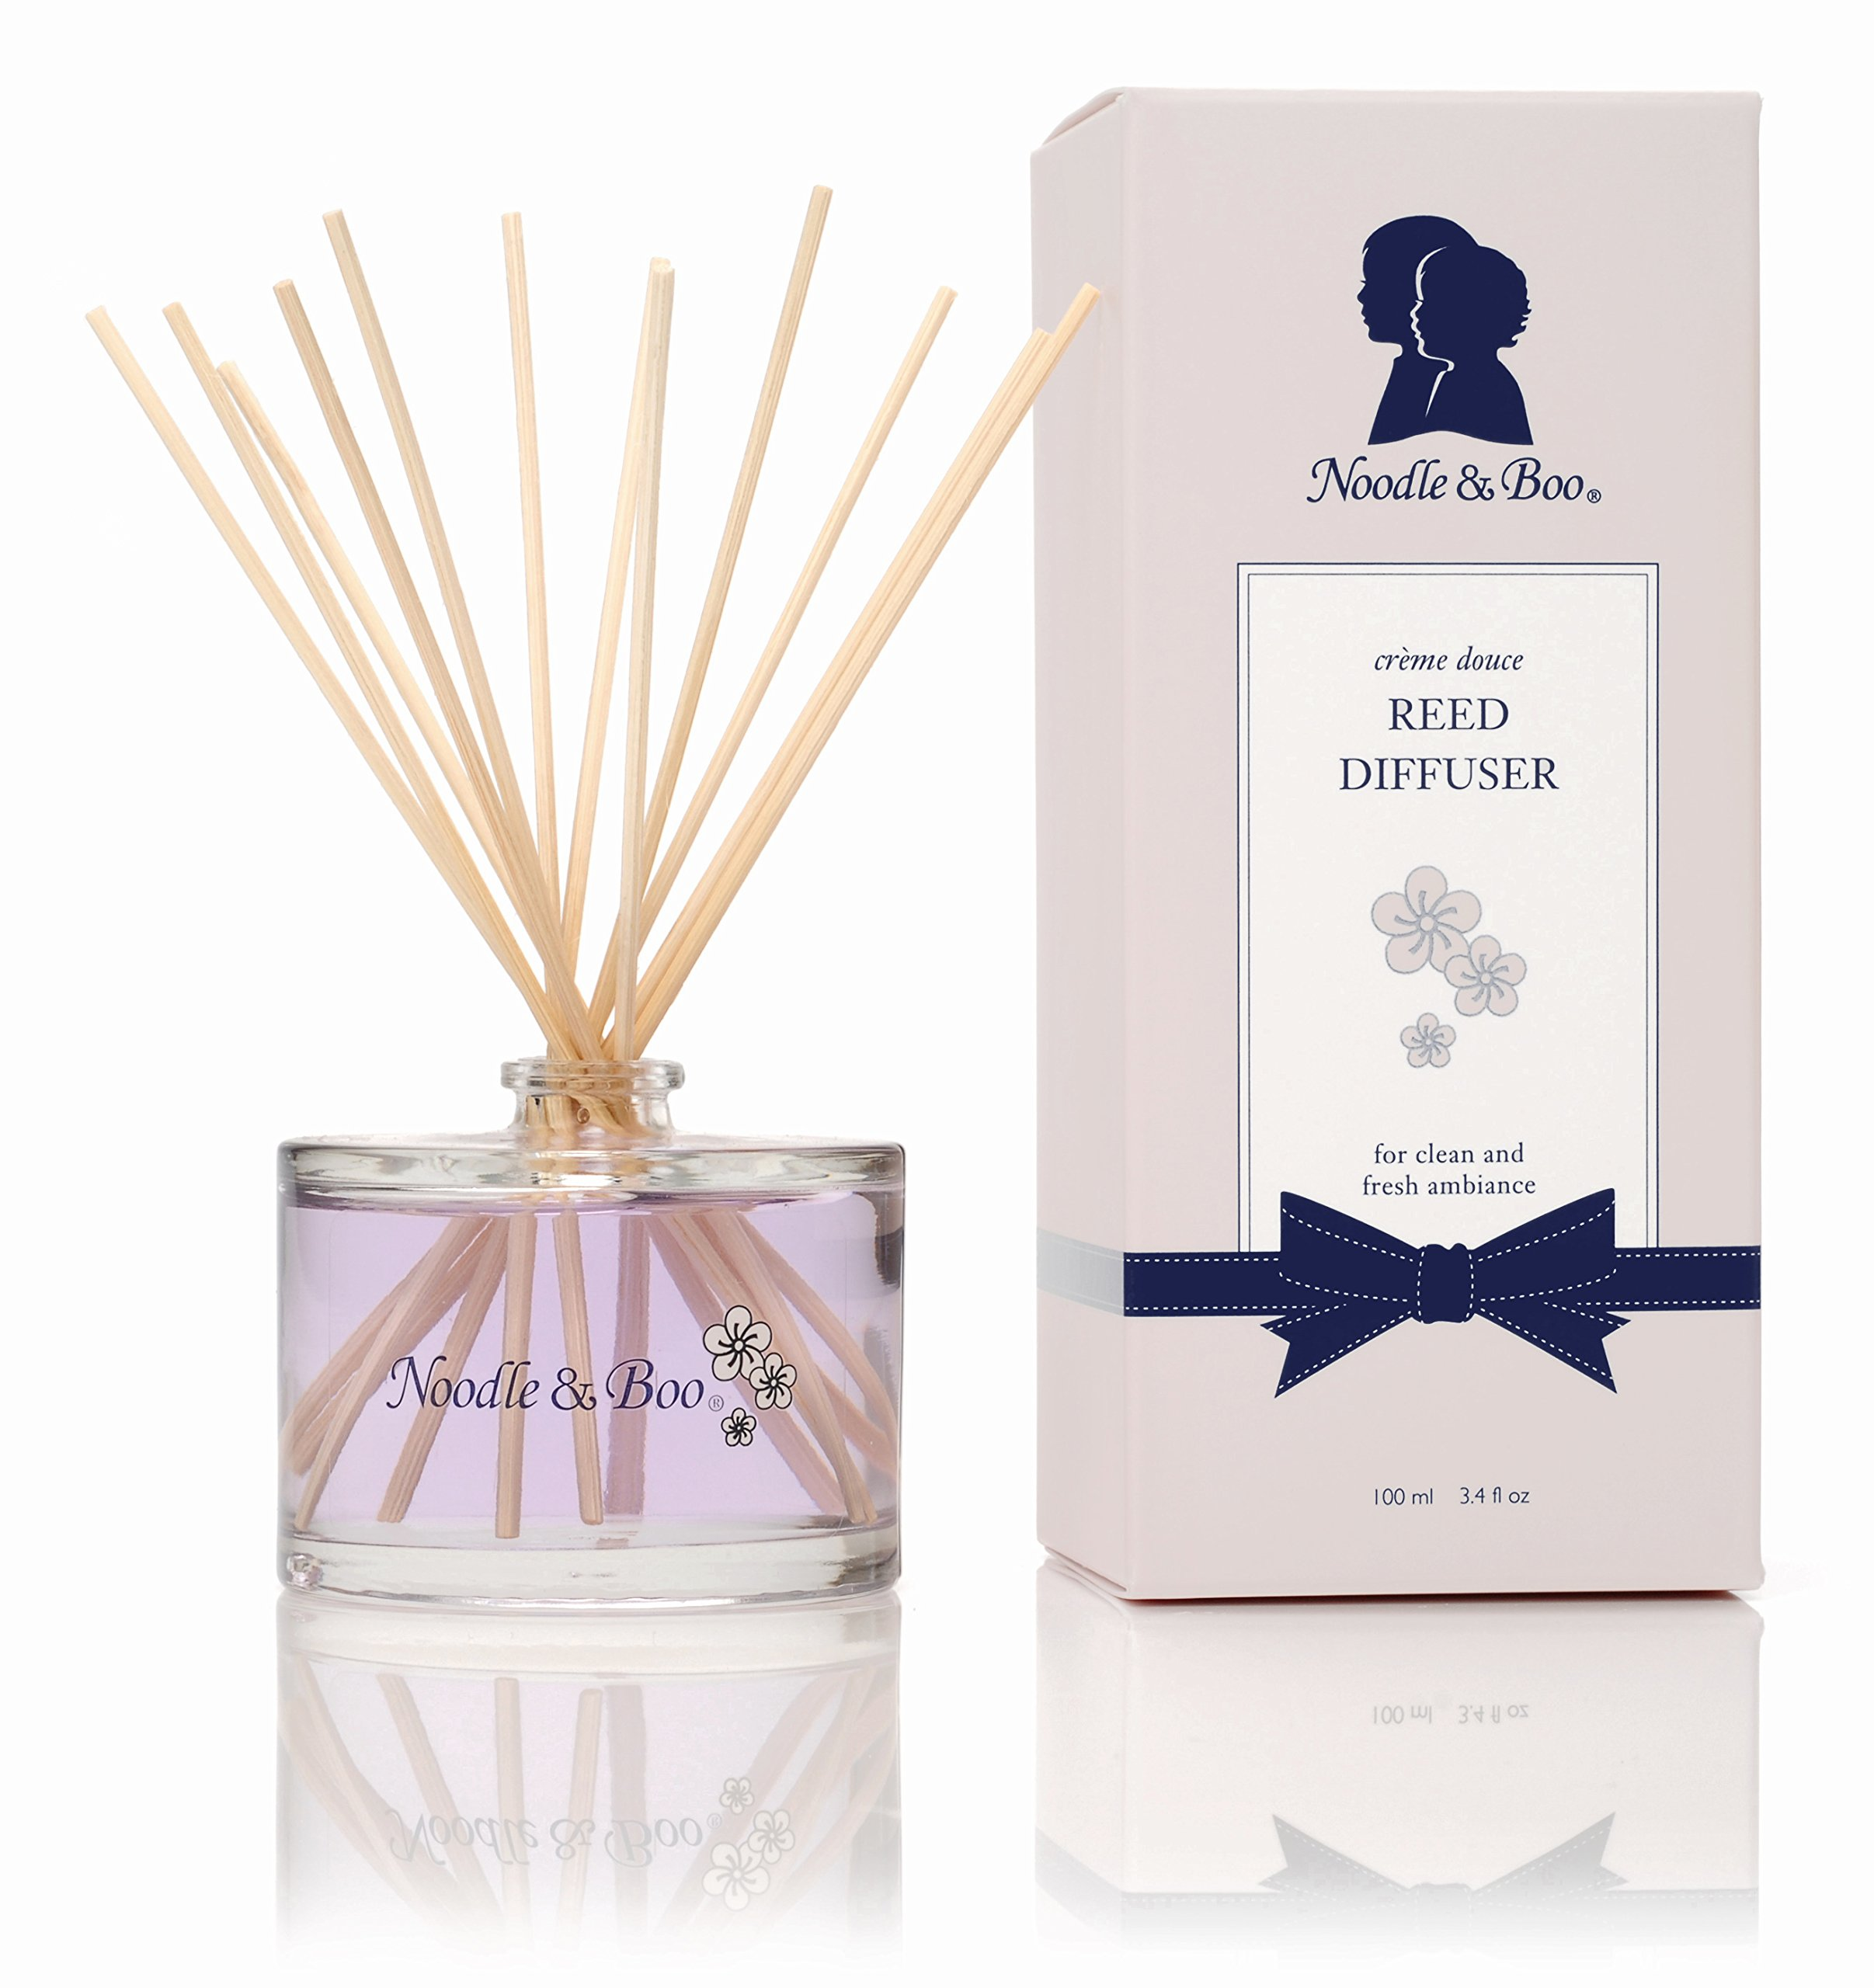 Noodle & Boo Reed Diffuser, 3.4 Fl Oz by Noodle & Boo (Image #1)